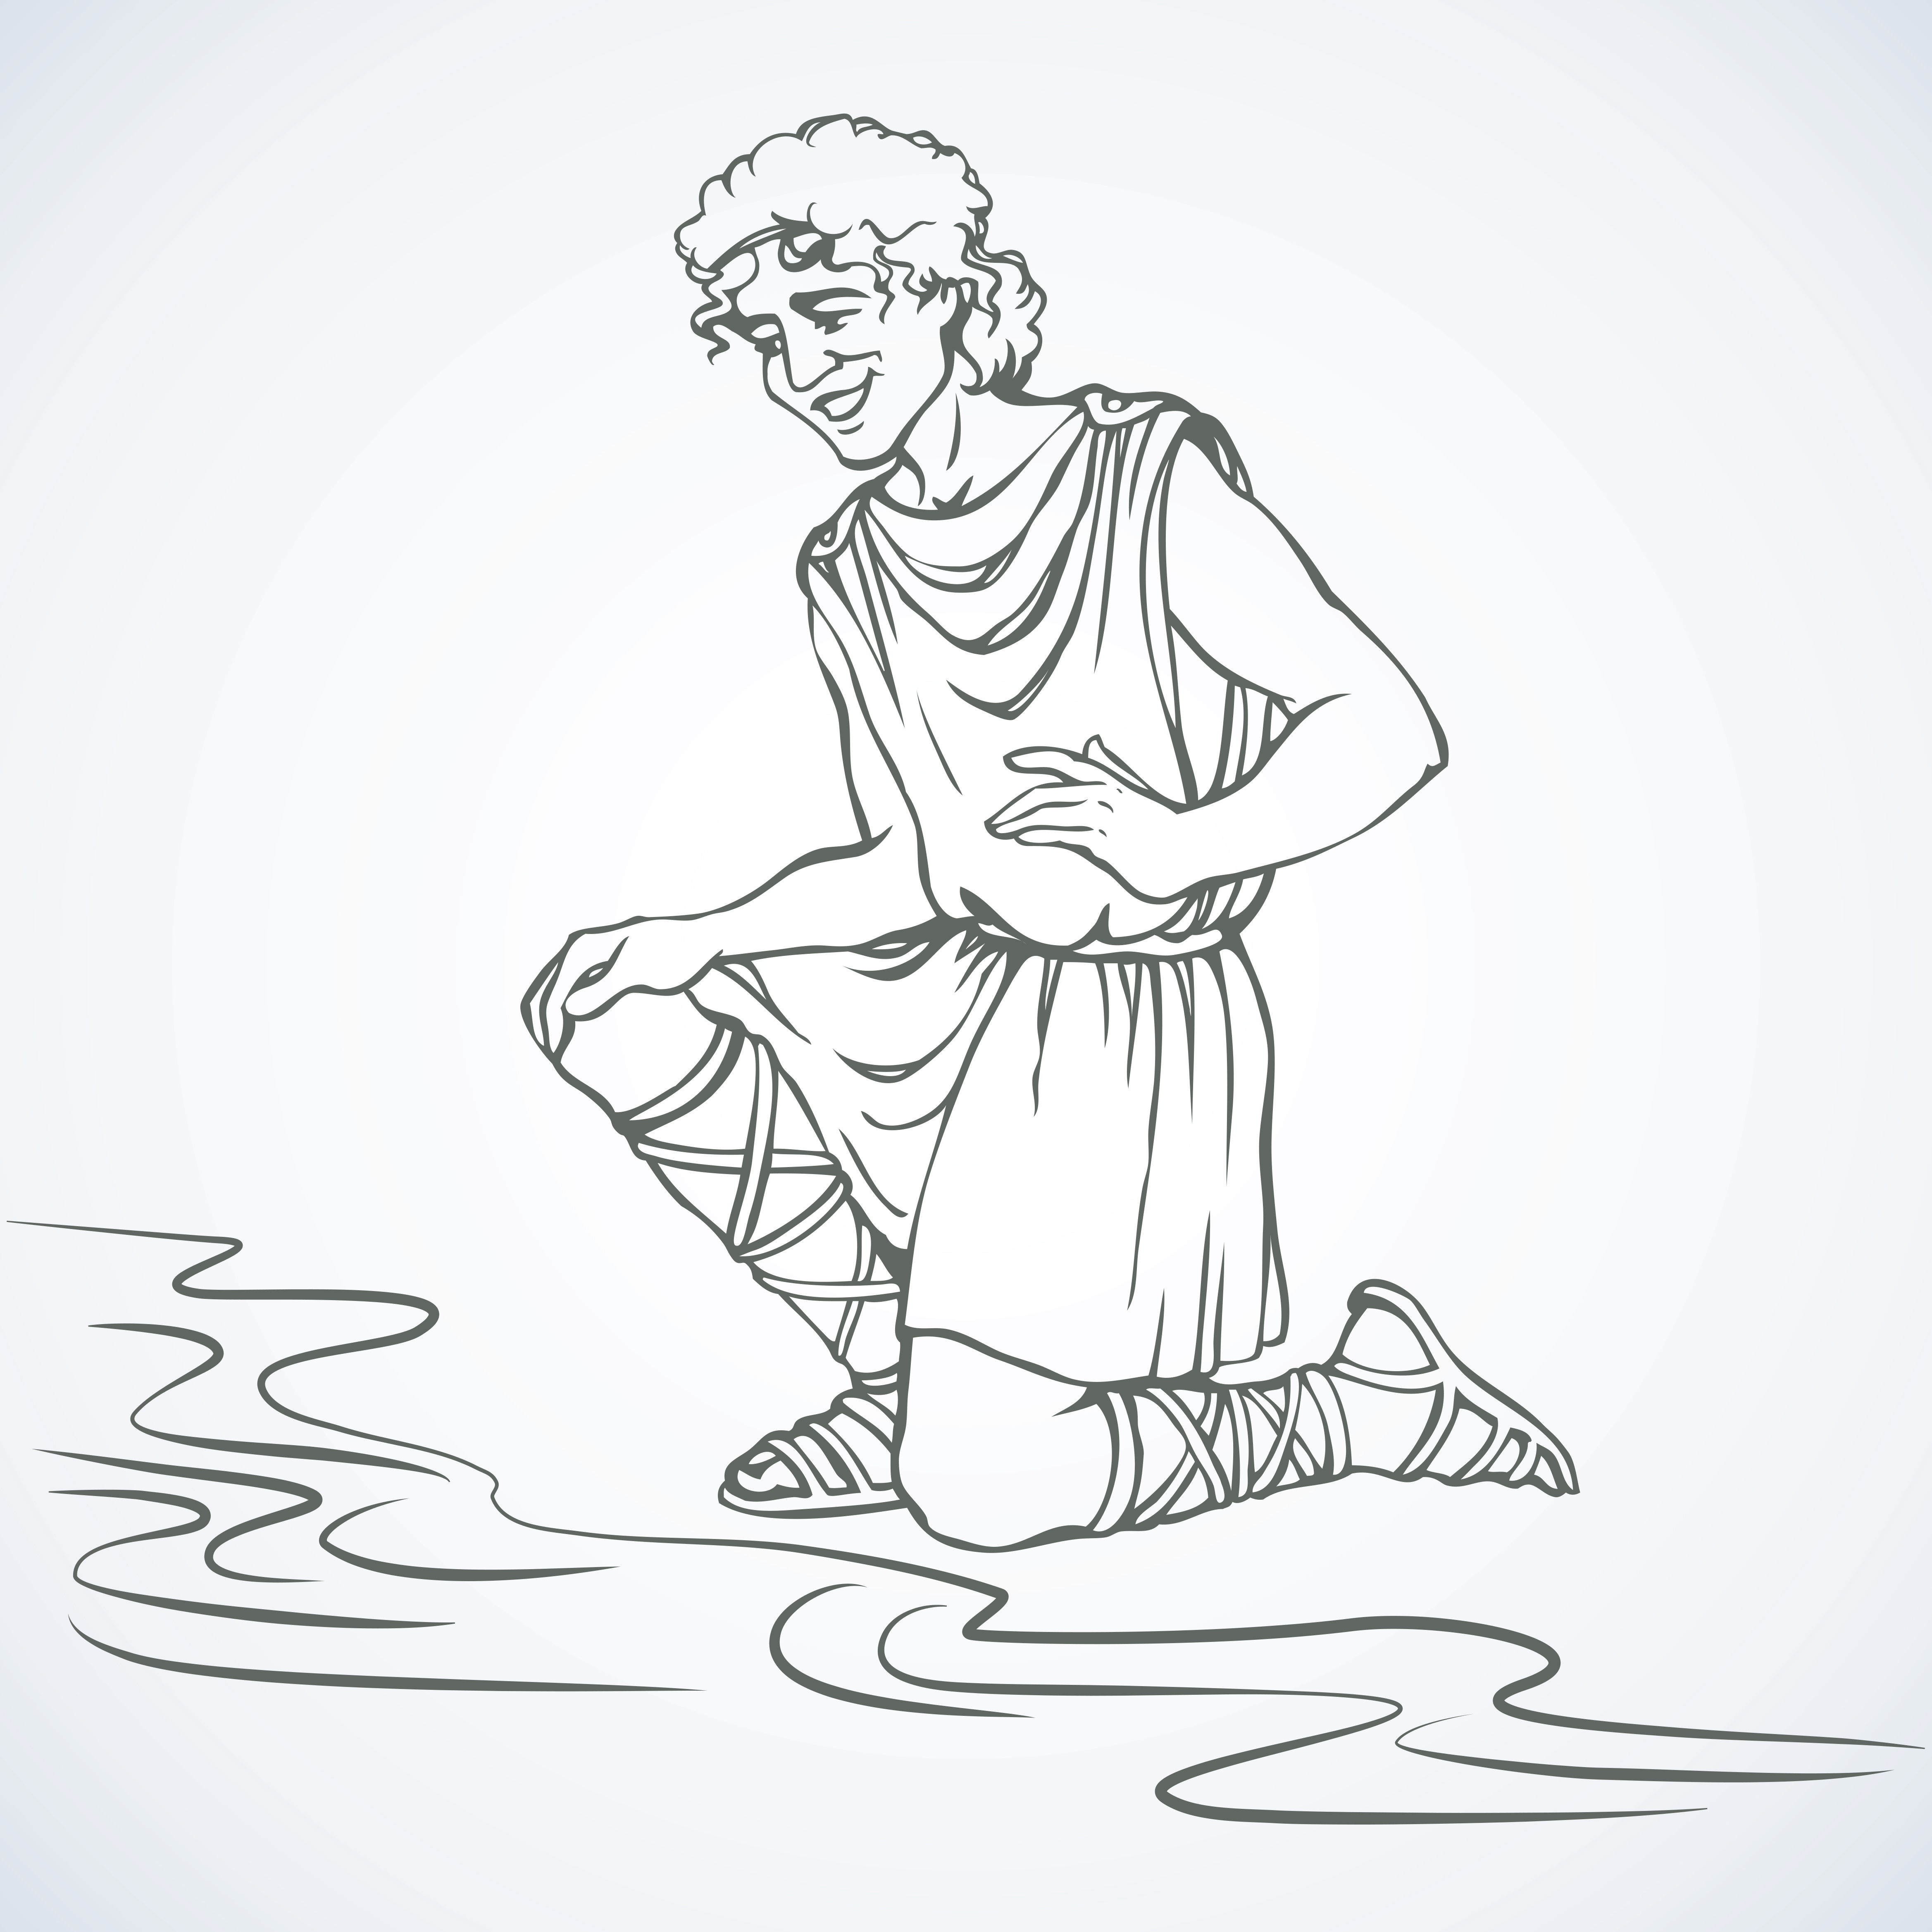 Hero Narkissos was a son of river god and nymph. He was proud, he disdained those who loved him. Vector outline freehand ink drawn background sketch in art antiquity picture style with space for text